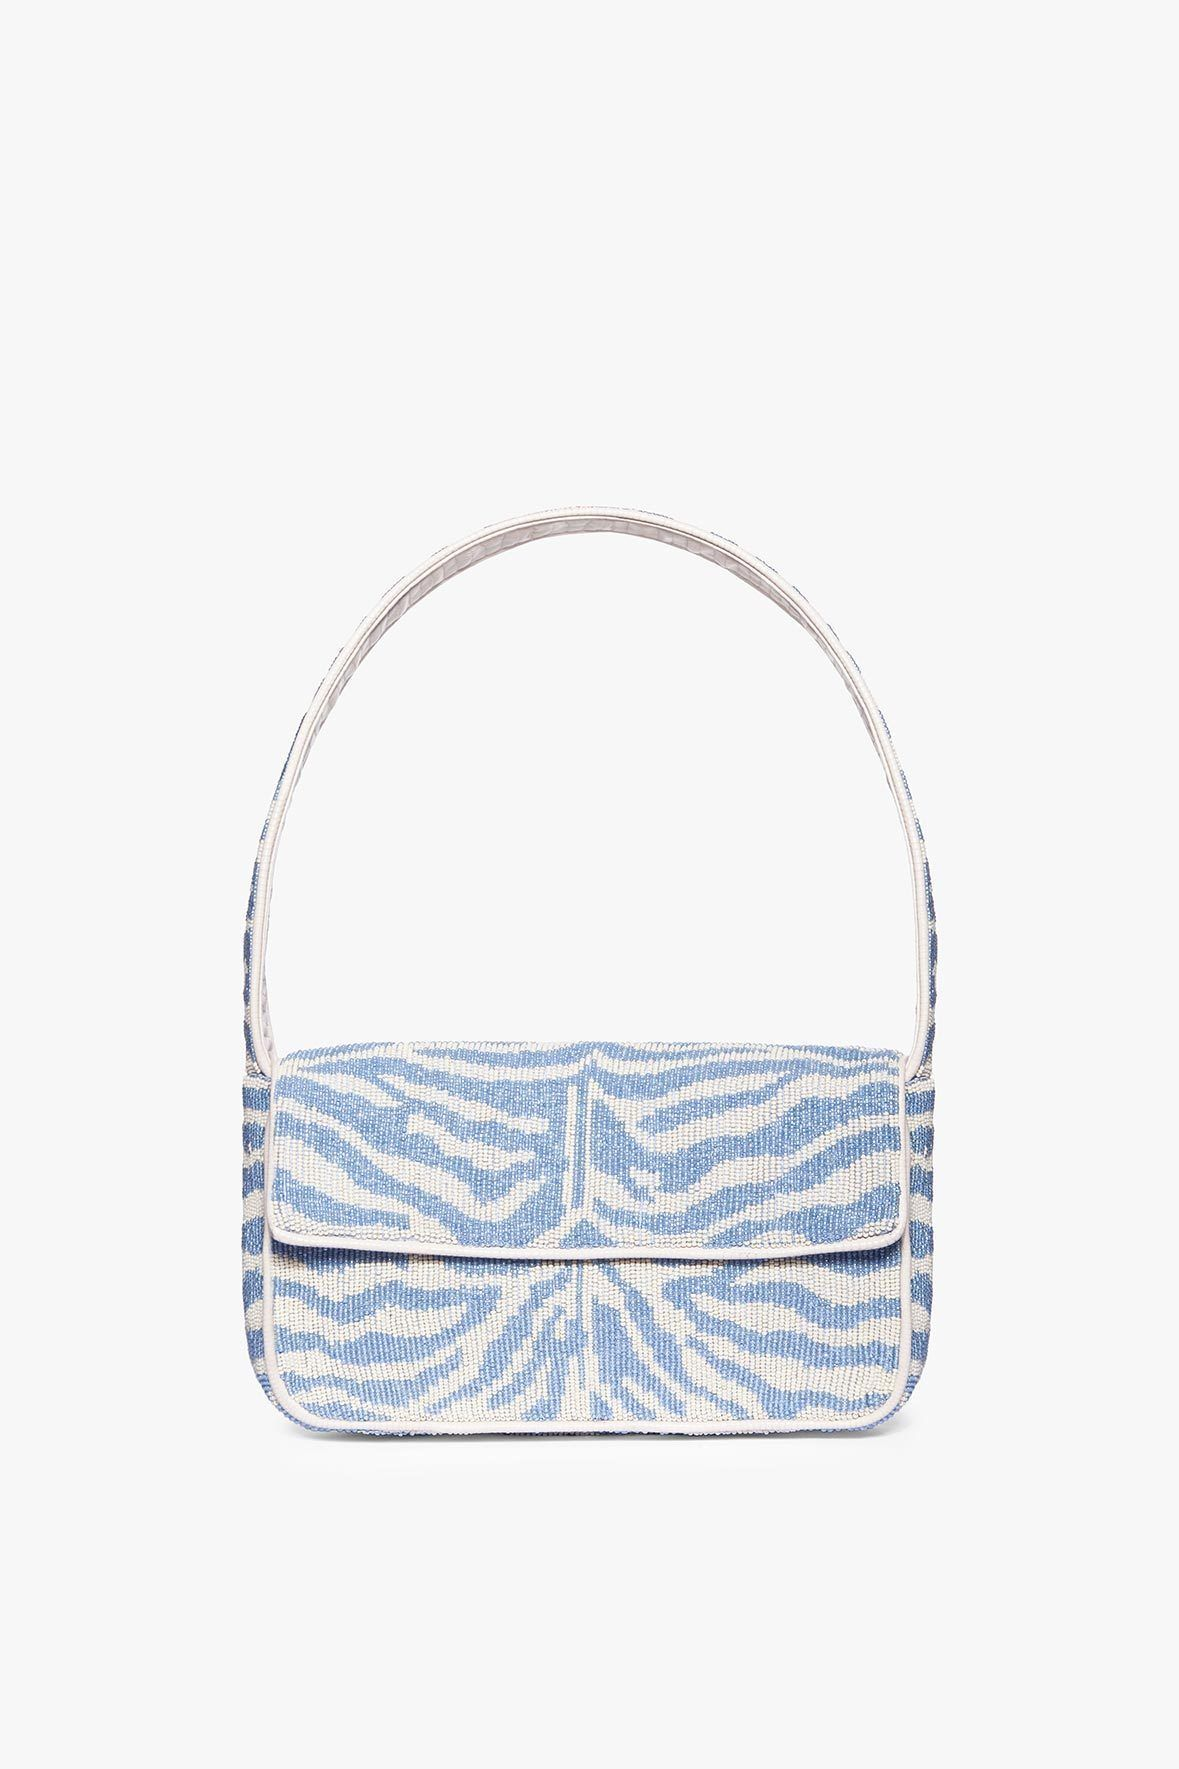 TOMMY BEADED BAG   LIGHT BLUE CREAM by Staud for $250 Kendall Jenner Bags Exact Product